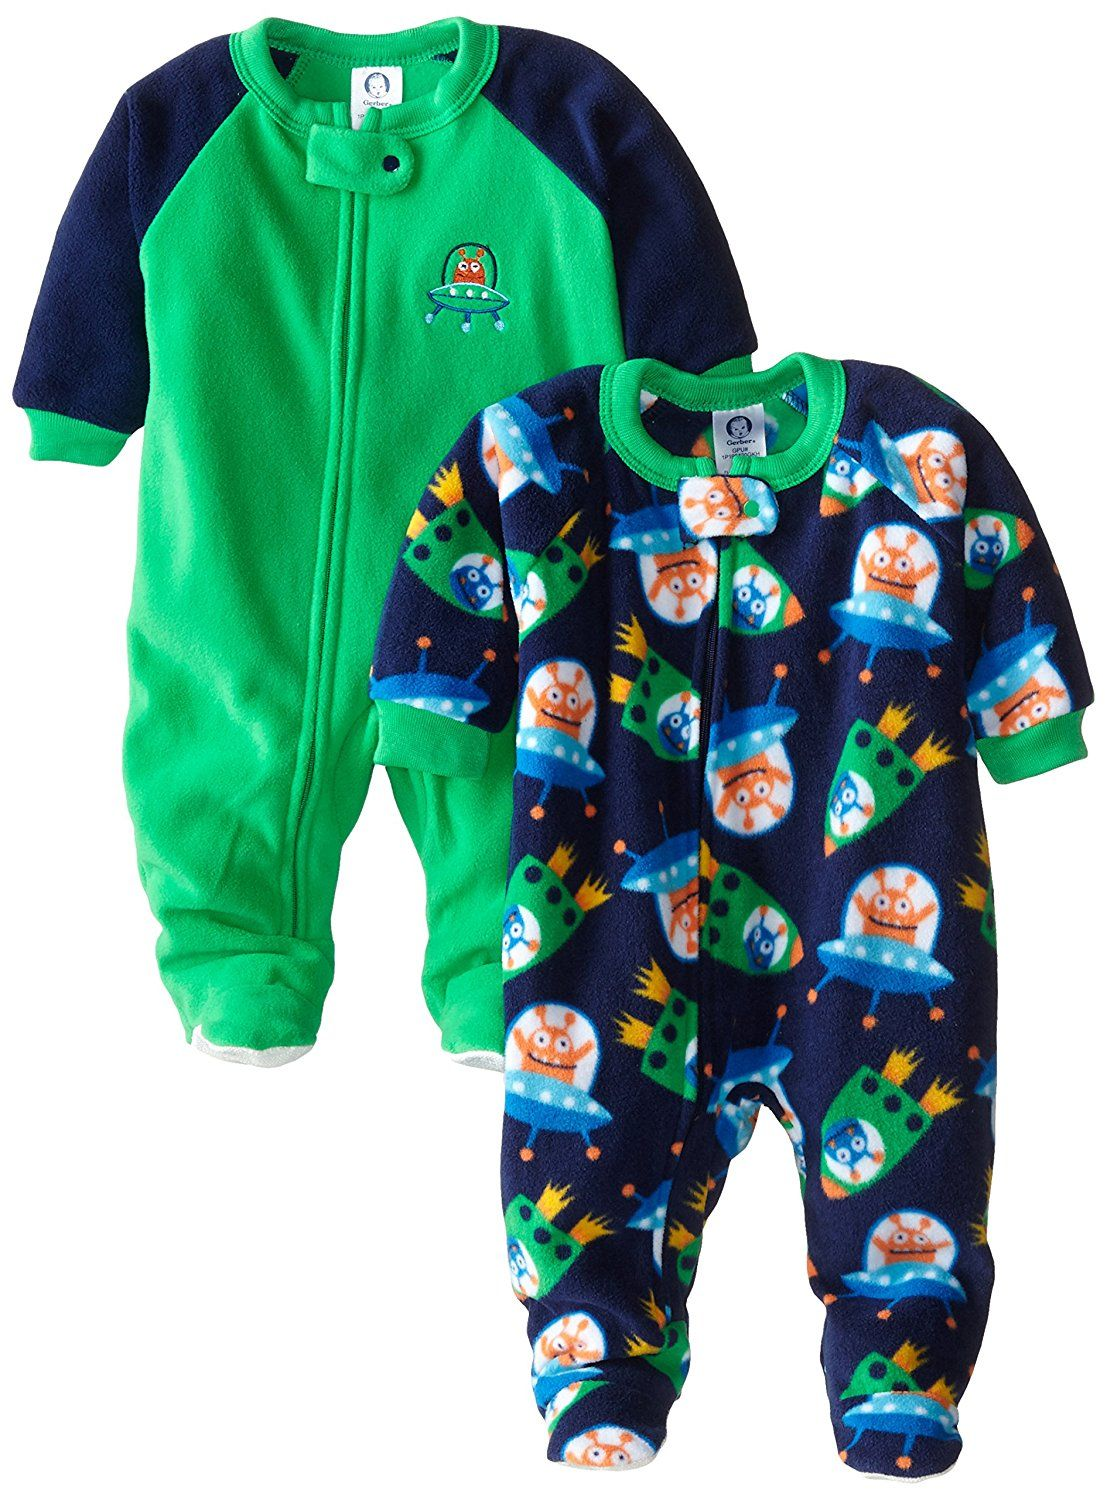 d1c8c73500 Amazon.com  Gerber Baby and Little Boys  2 Pack Blanket Sleepers  Clothing